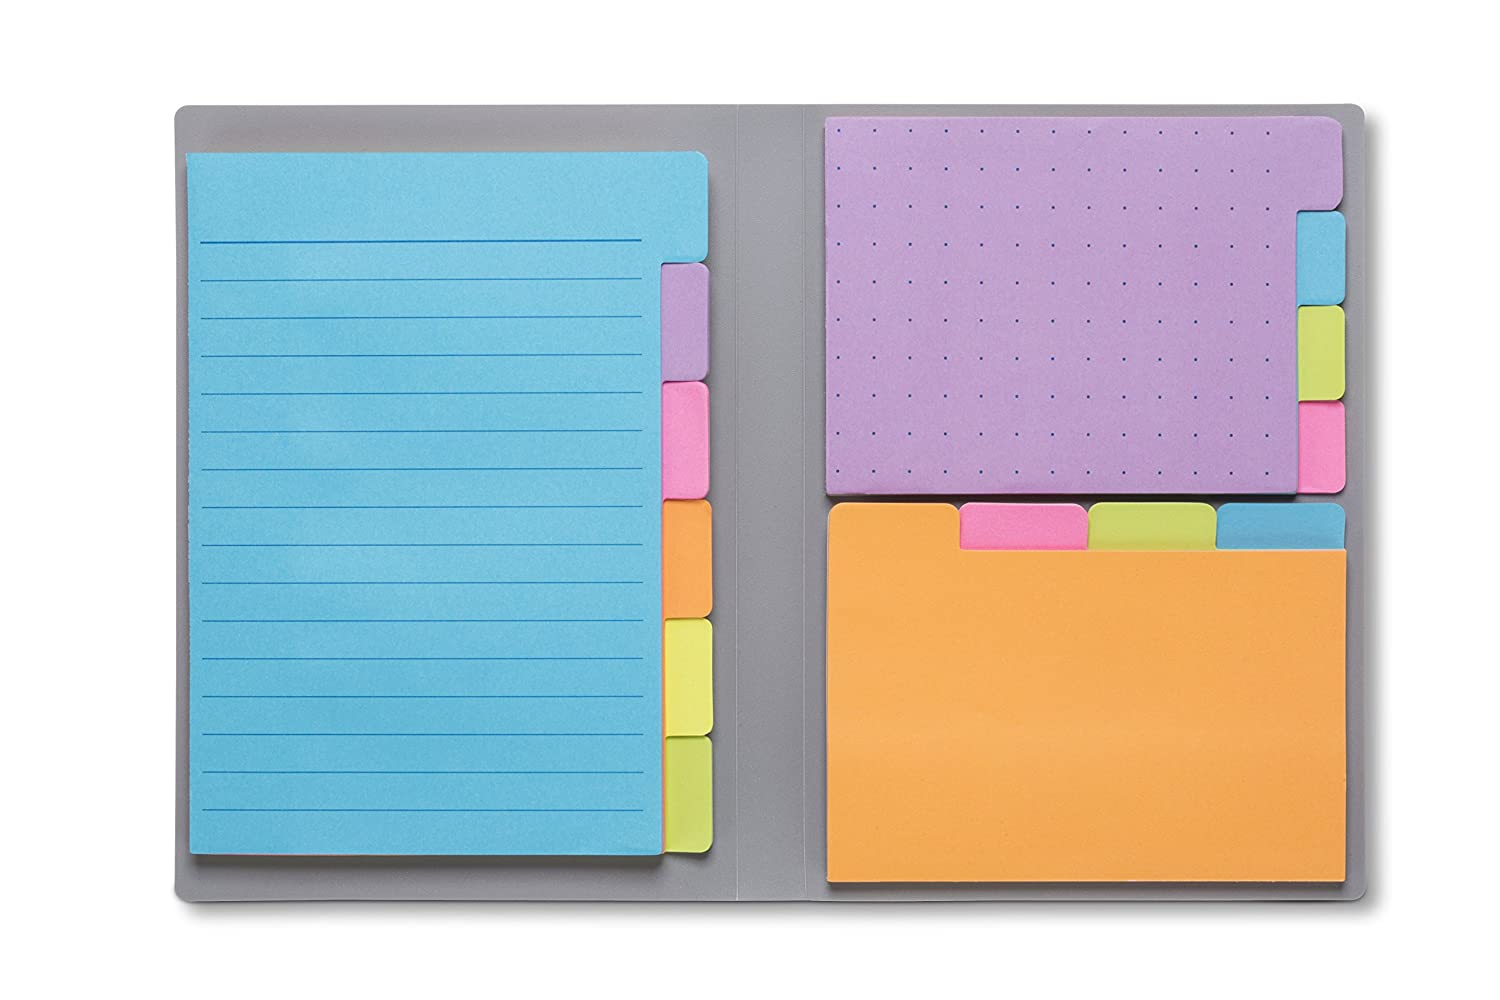 Sticky Notes by Panda Planner - Bookmark, Prioritize and Set Goals with Color Coding - 60 Ruled Lined Notes (4x6), 40 Dotted Notes (3x4), 40 Blank Notes (2.7x4.2) - 140 Total Tab Divider Notes